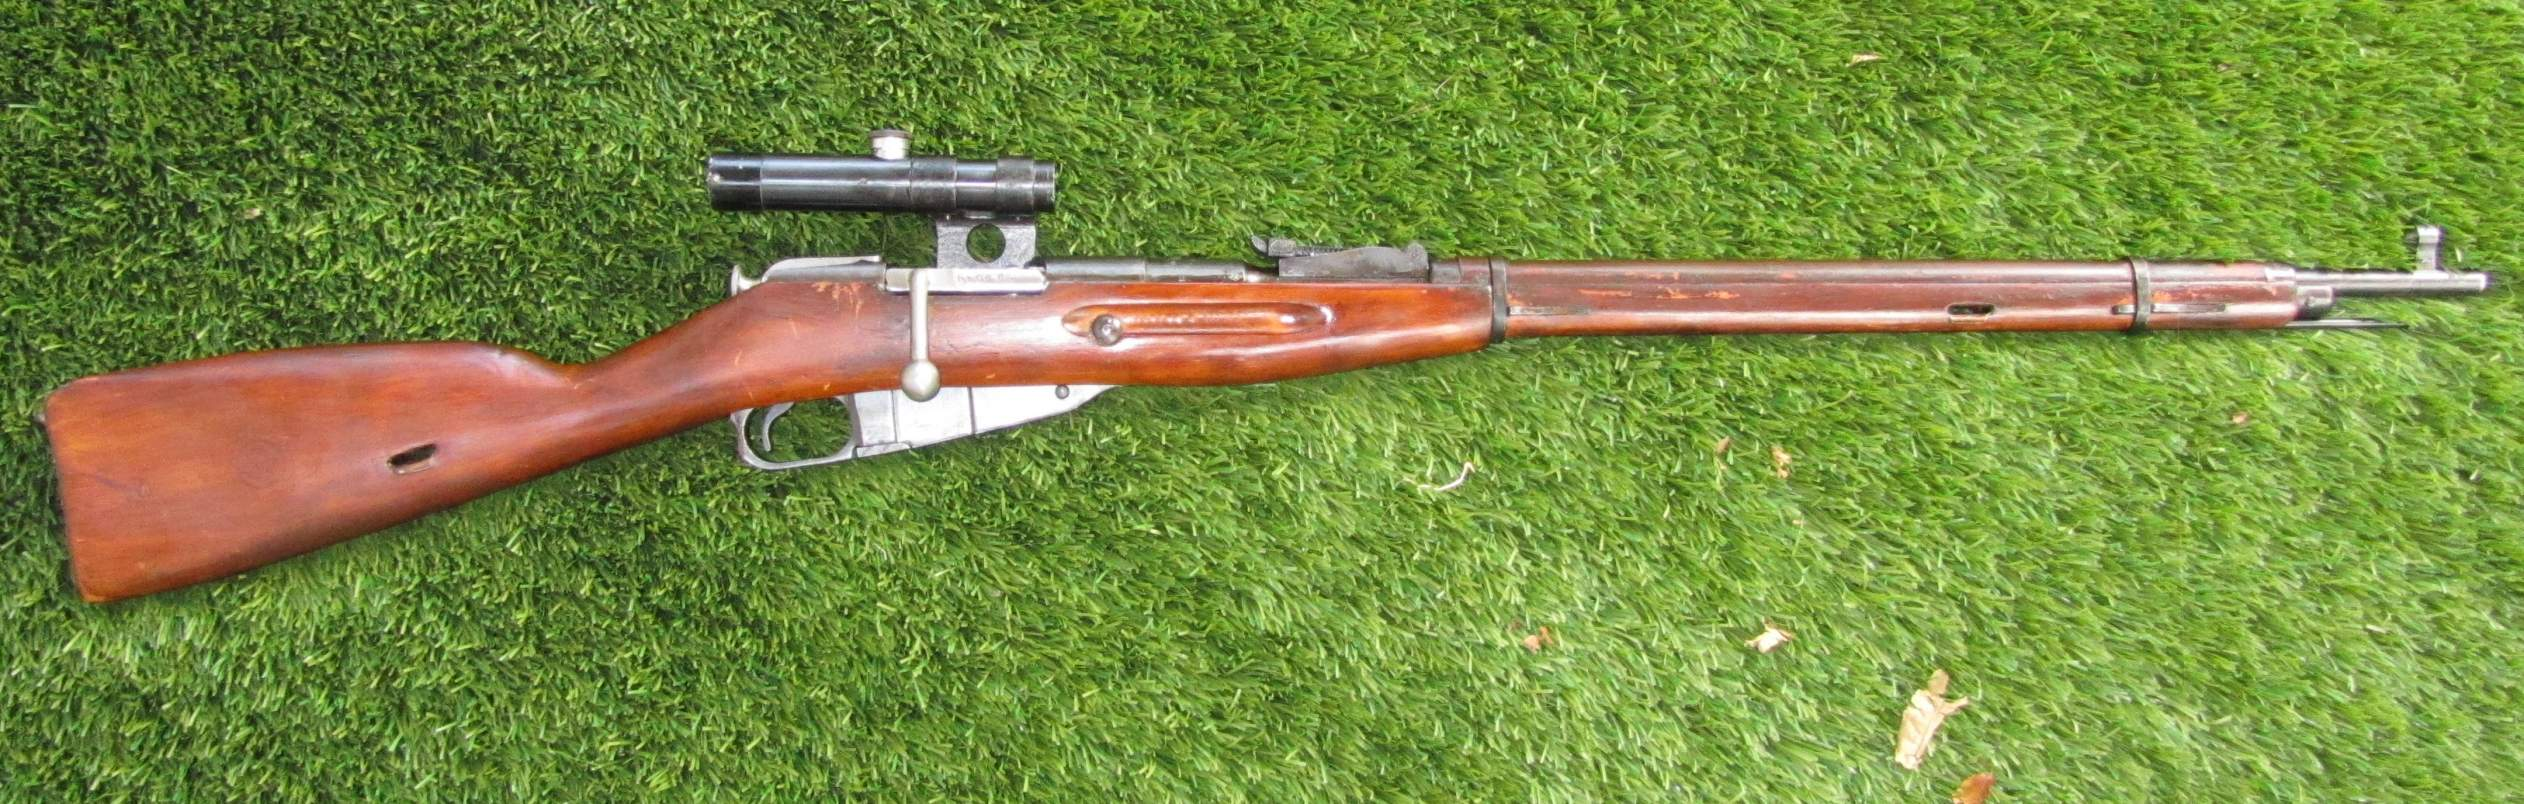 m1 garand rifle Just some quick shooting footage of the awesome 30-06 m1 garand battle rifle related youtuber to this video: .